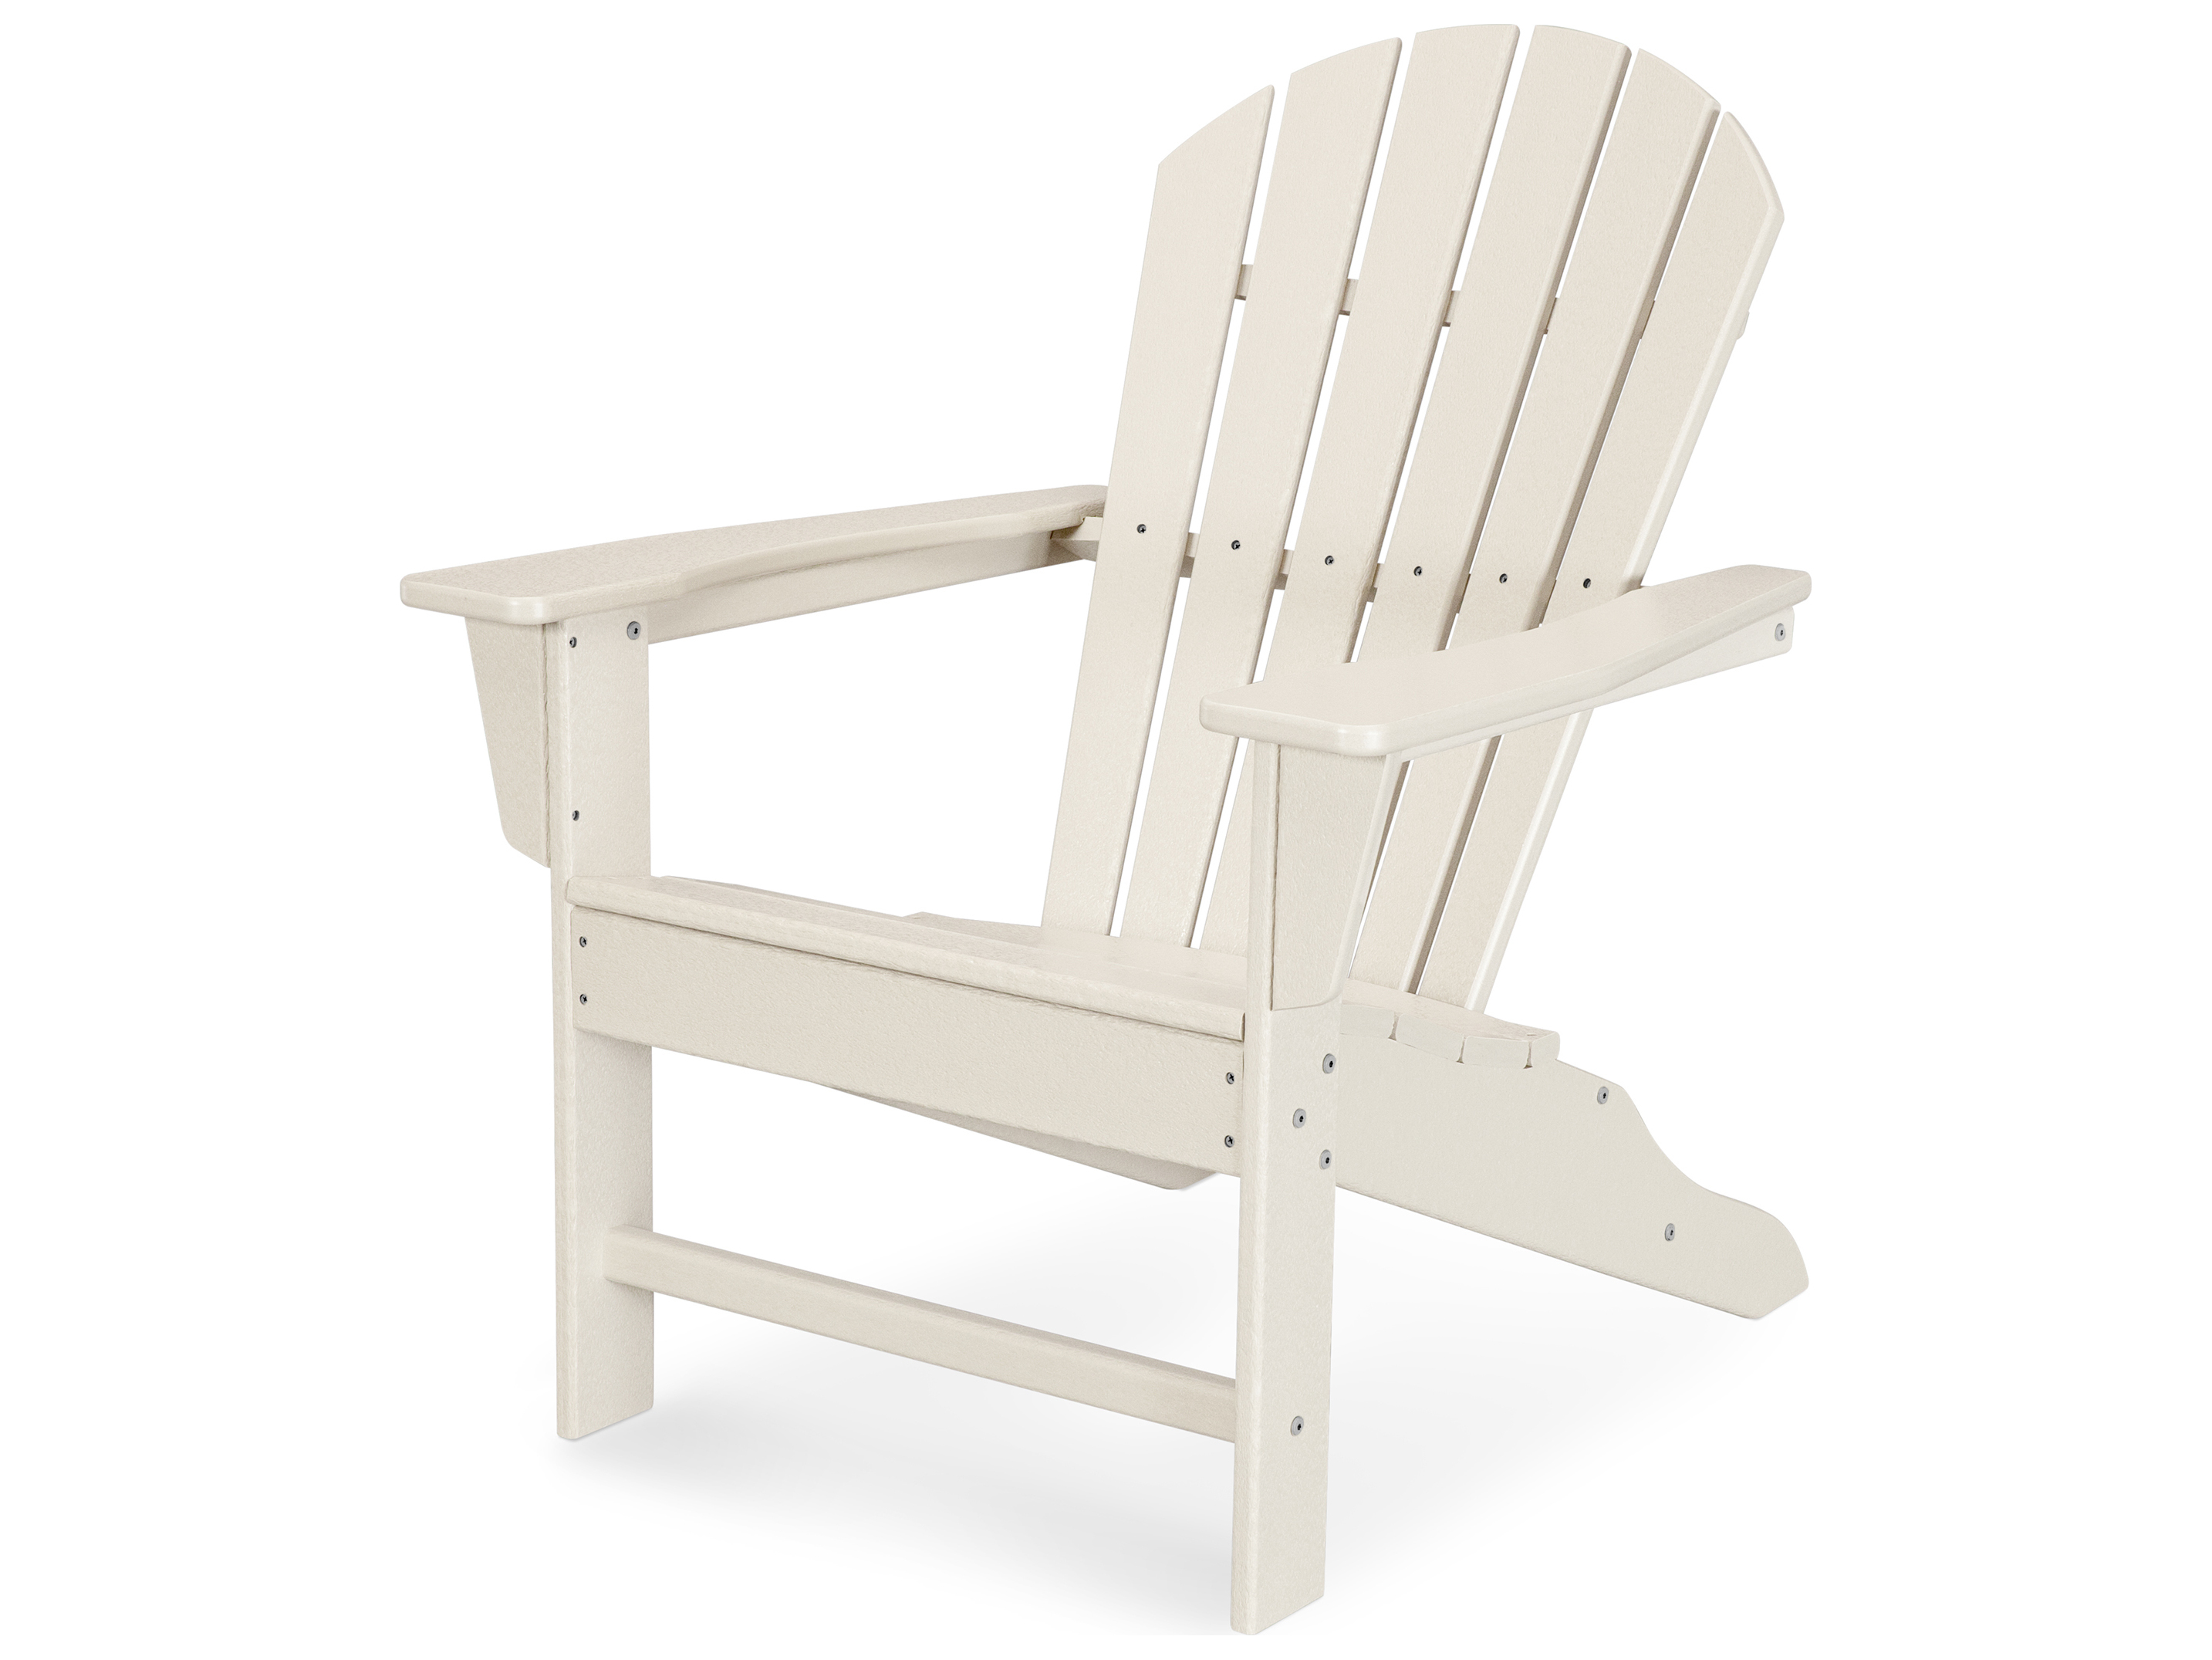 Adirondack Chair Plastic Polywood South Beach Recycled Plastic Adirondack Chair